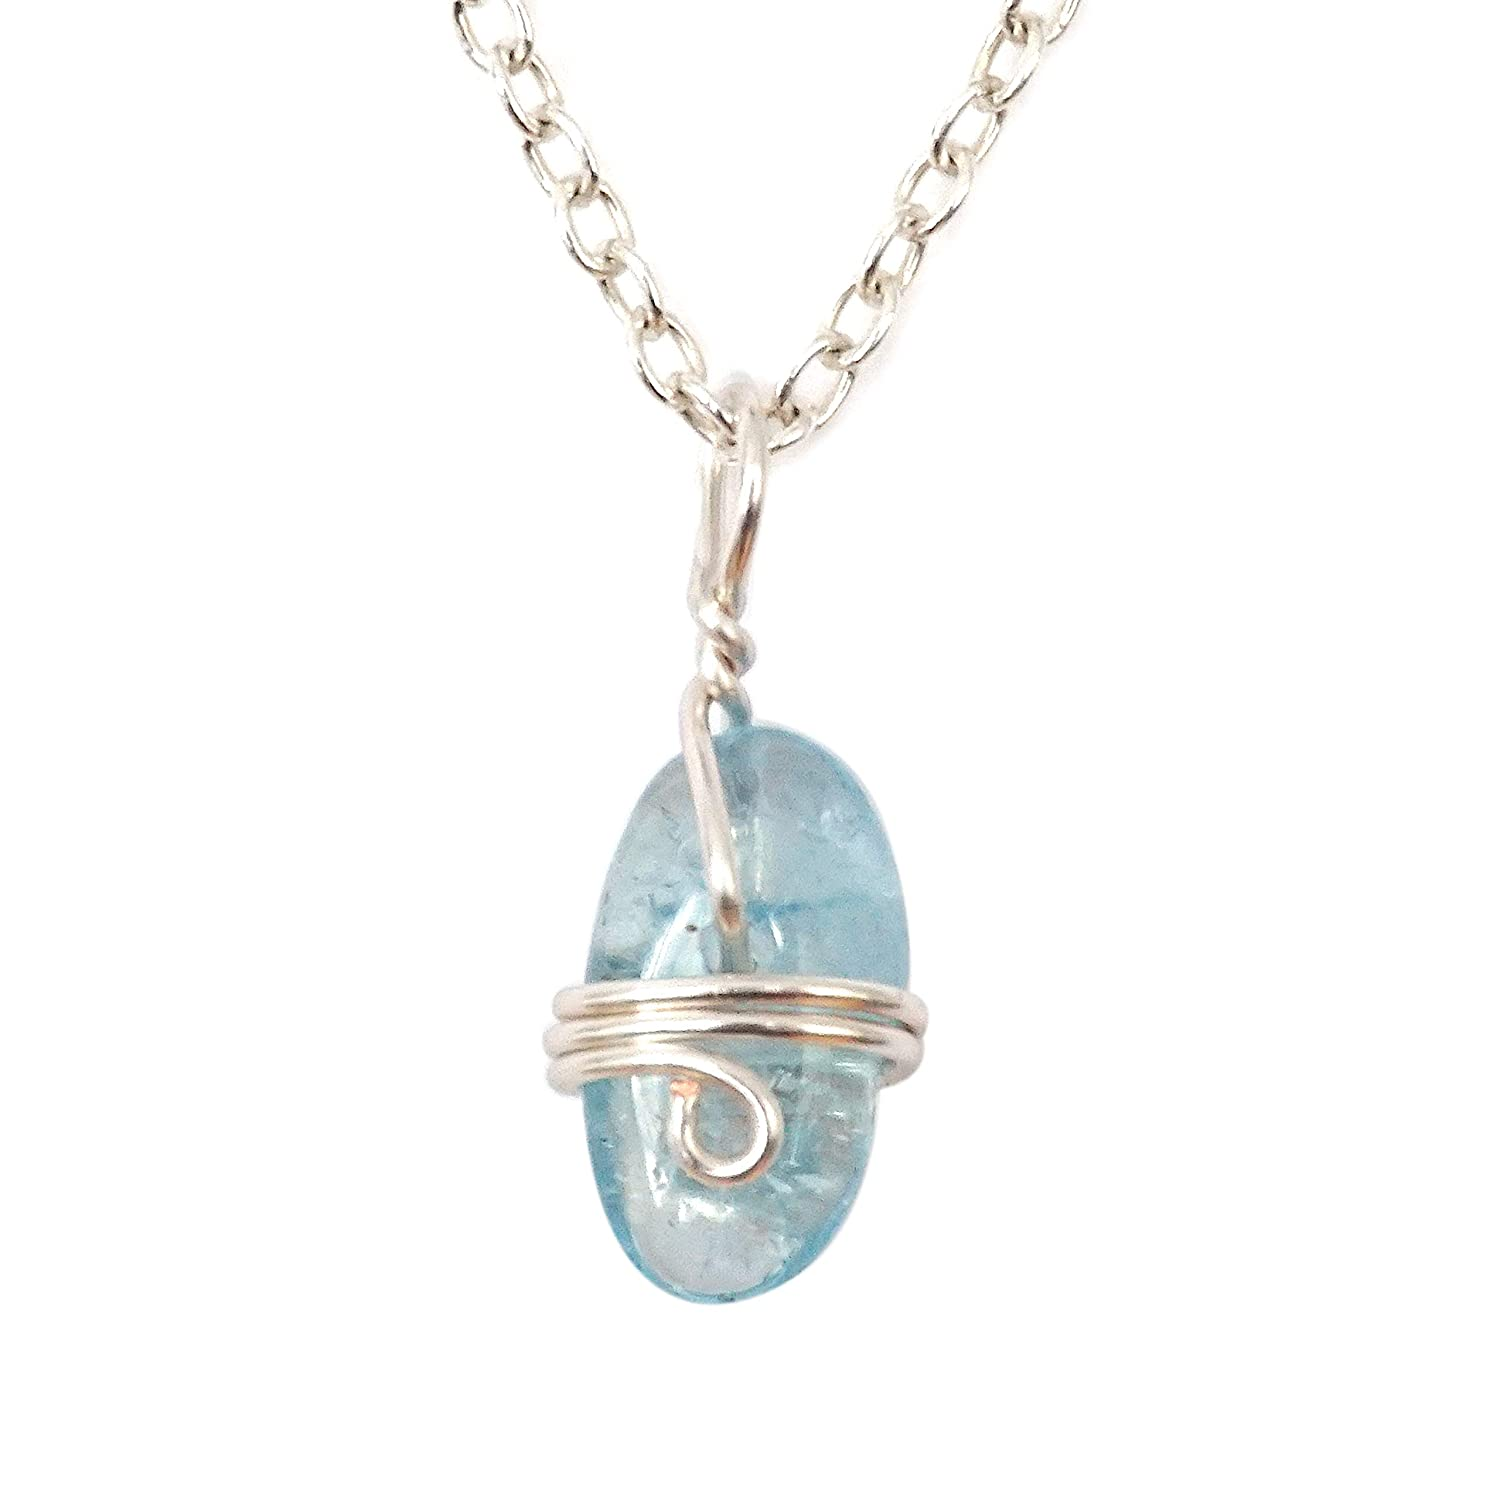 Dainty aquamarine sterling silver necklace